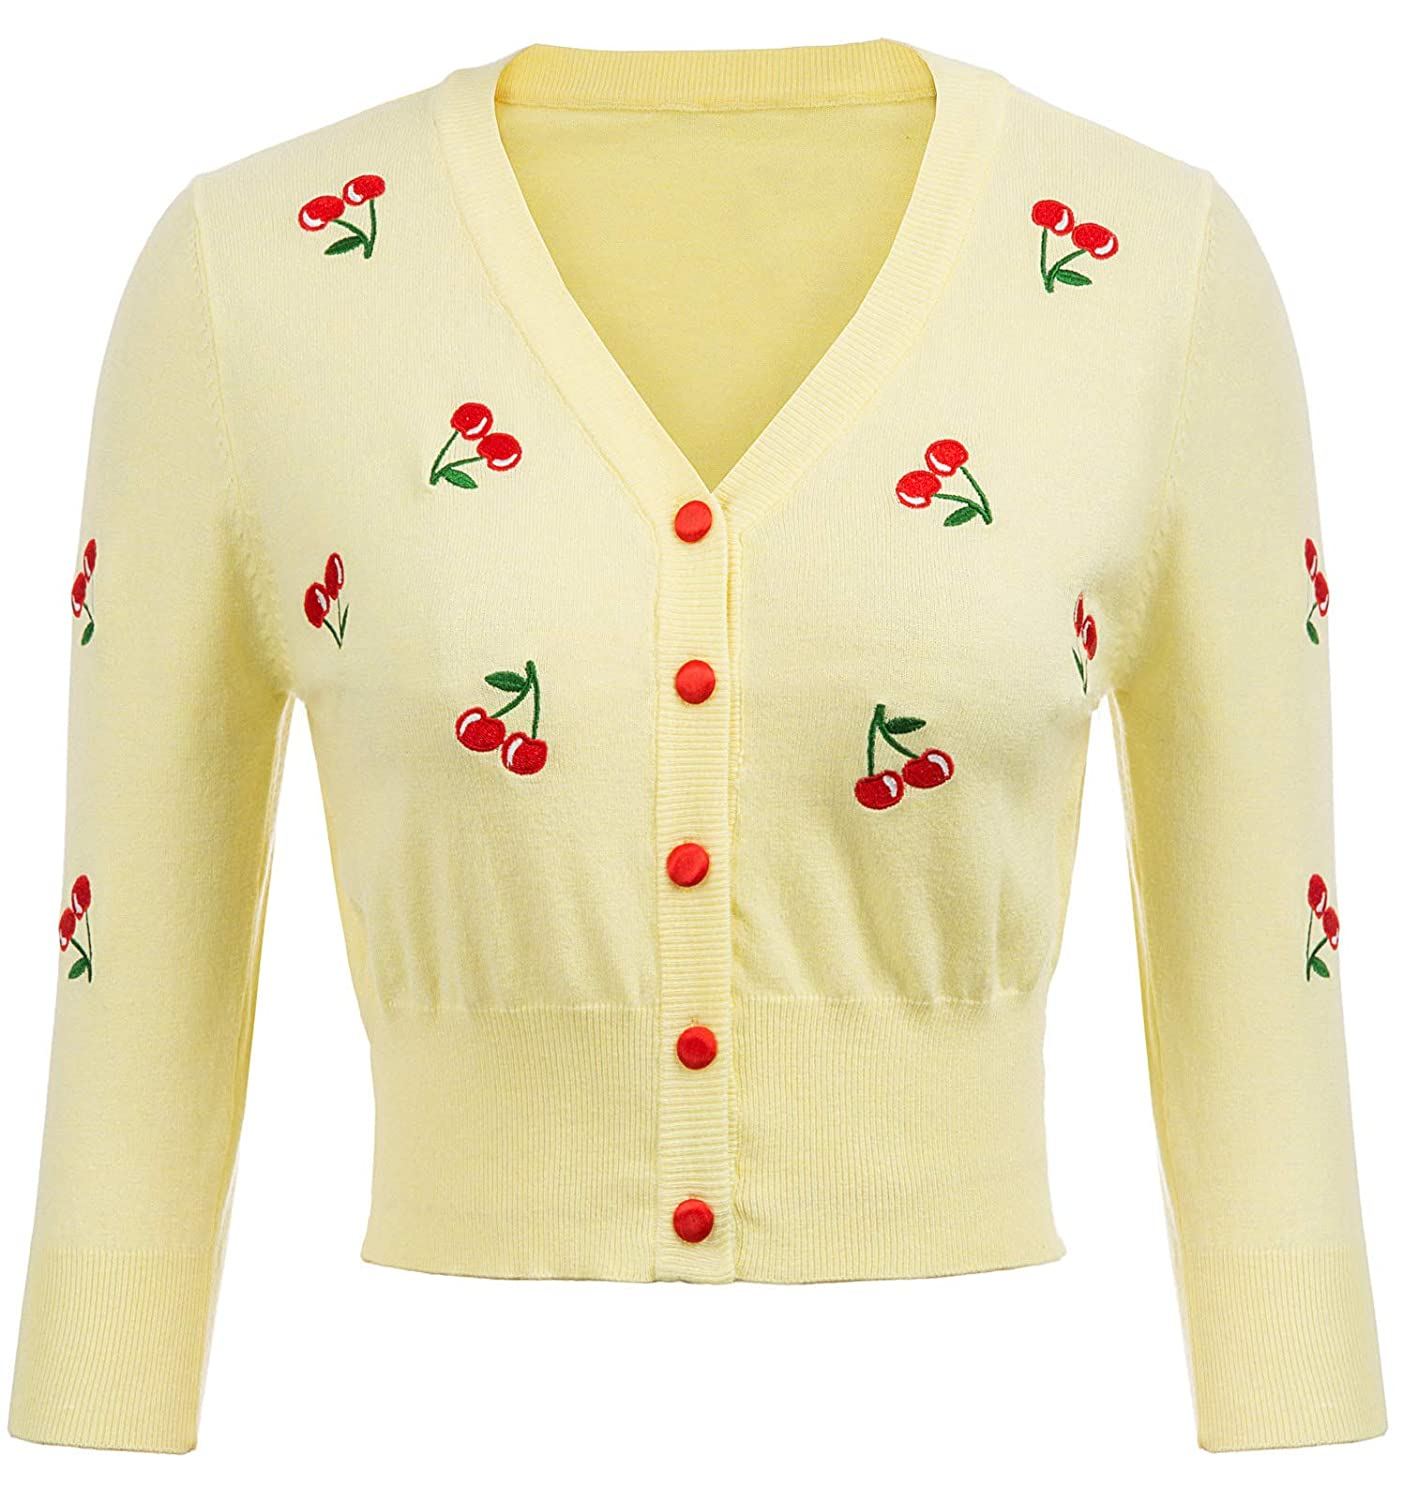 Vintage Sweaters, Retro Sweaters & Cardigan Ladies Belle Poque Womens 3/4 Sleeve V-Neck Button Down Cherries Embroidery Cropped Cardigan Sweater Coat $23.99 AT vintagedancer.com